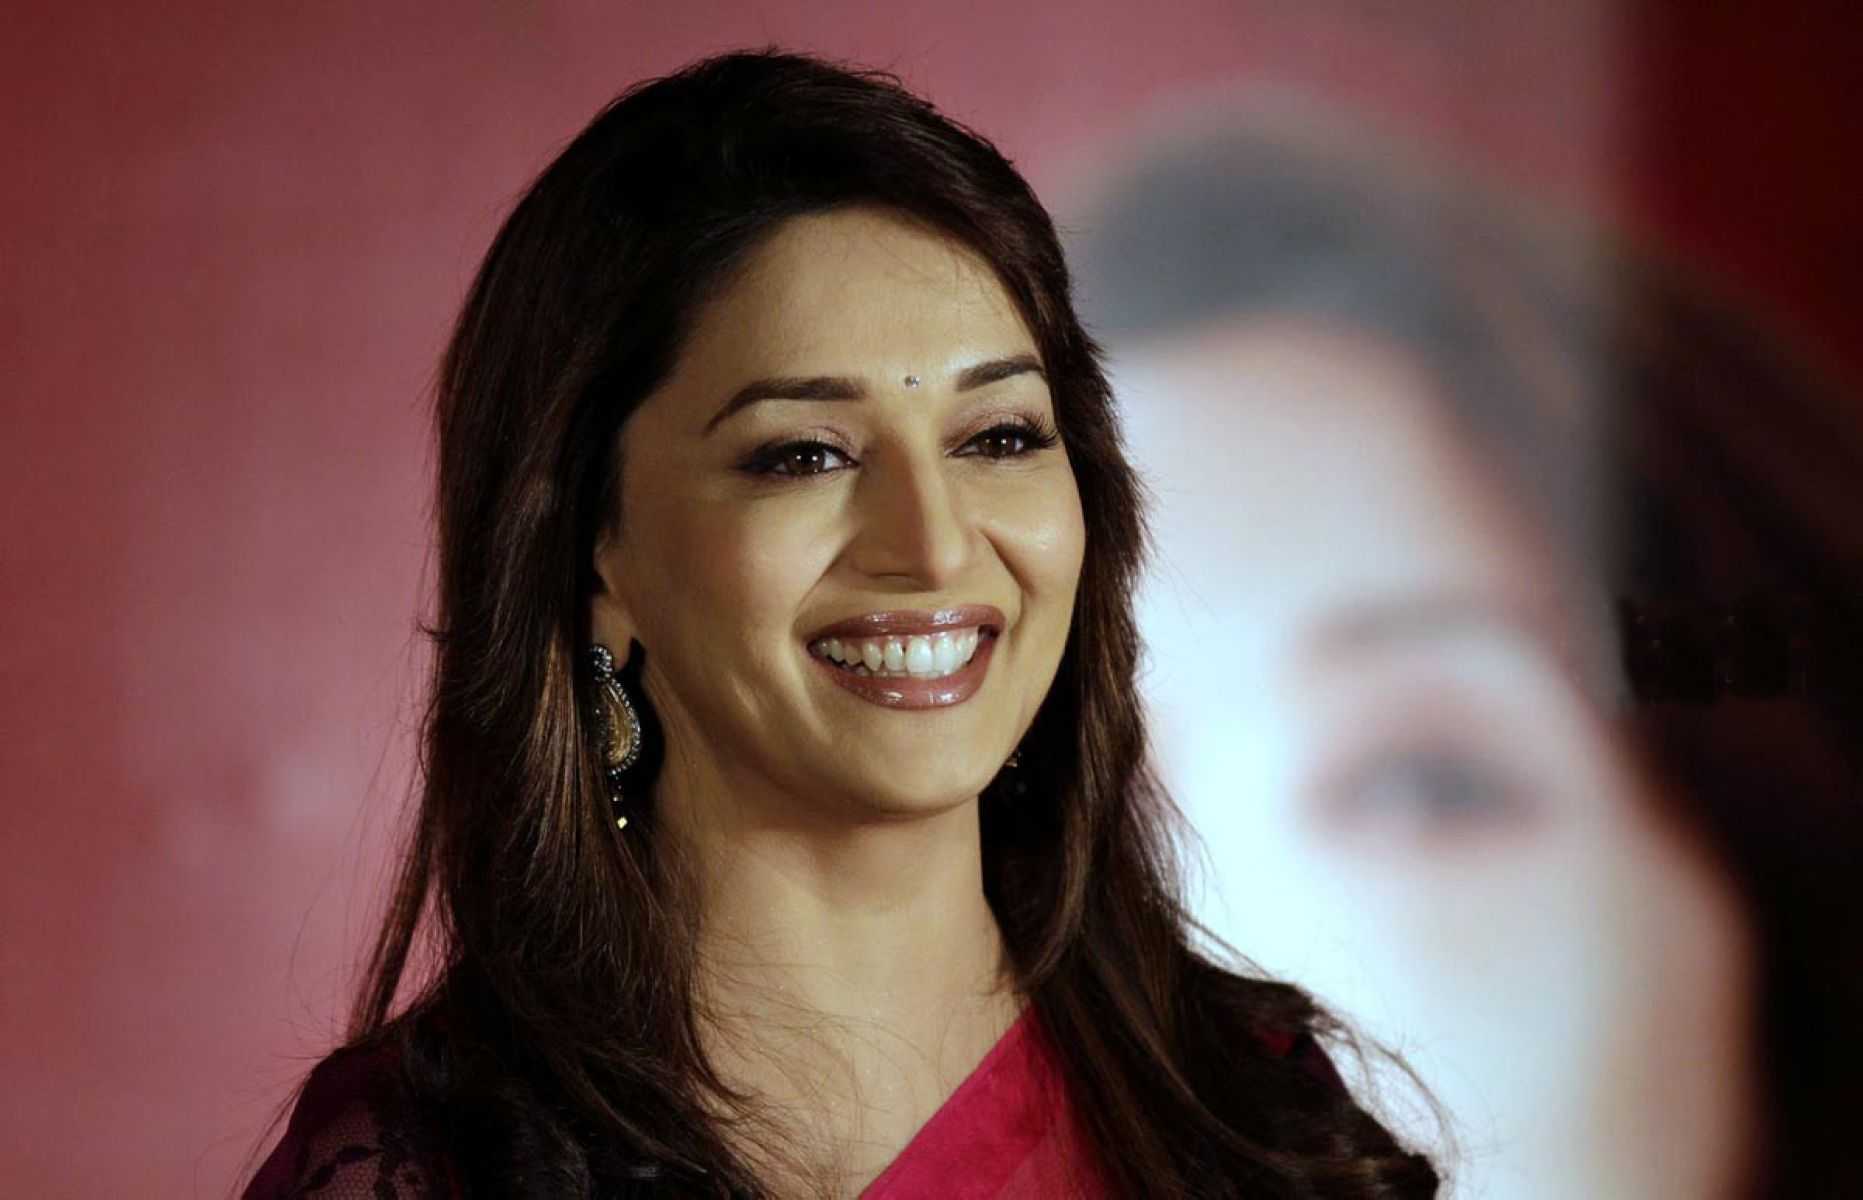 Madhuri Dixit HD Wallpapers (53 Wallpapers) - Adorable Wallpapers